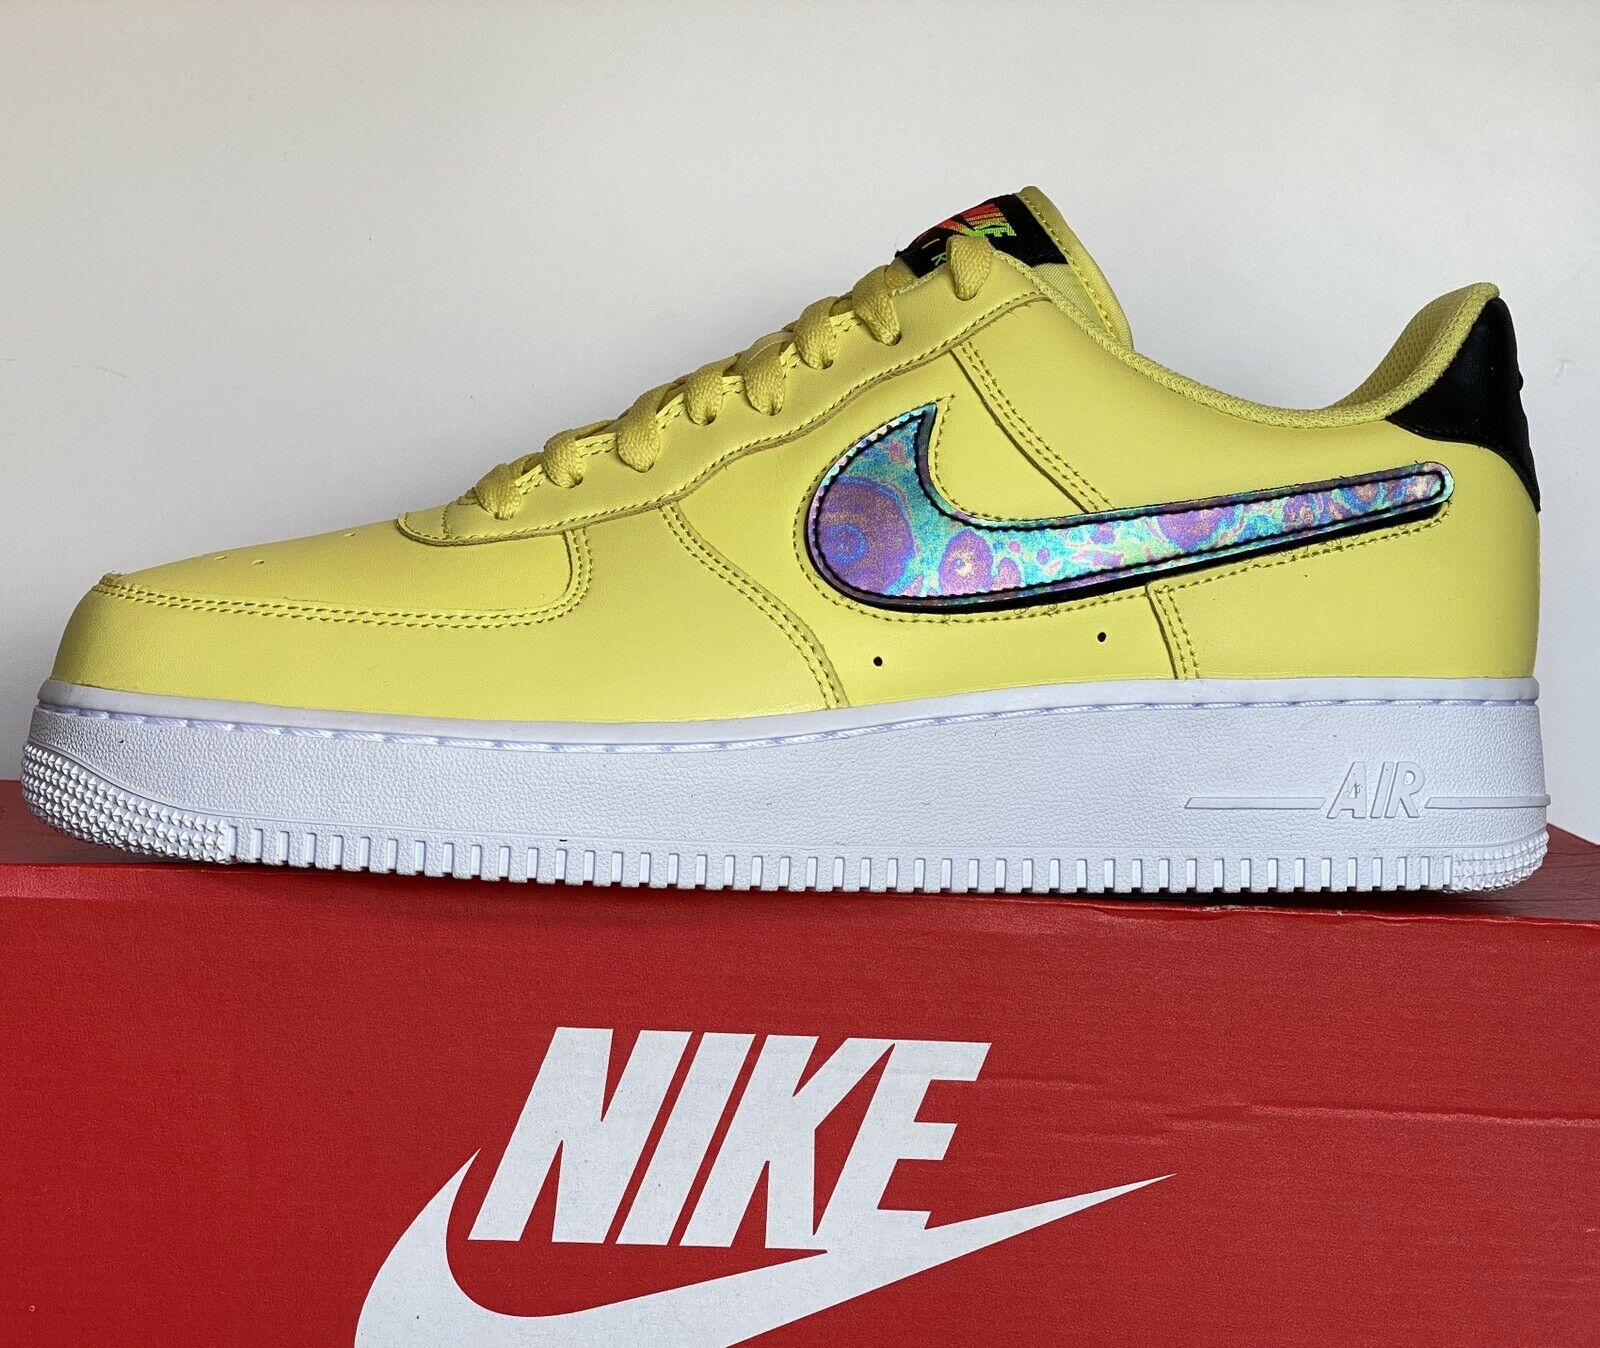 Nike Air Force 1 Af1 '07 Lv8 3 Yellow